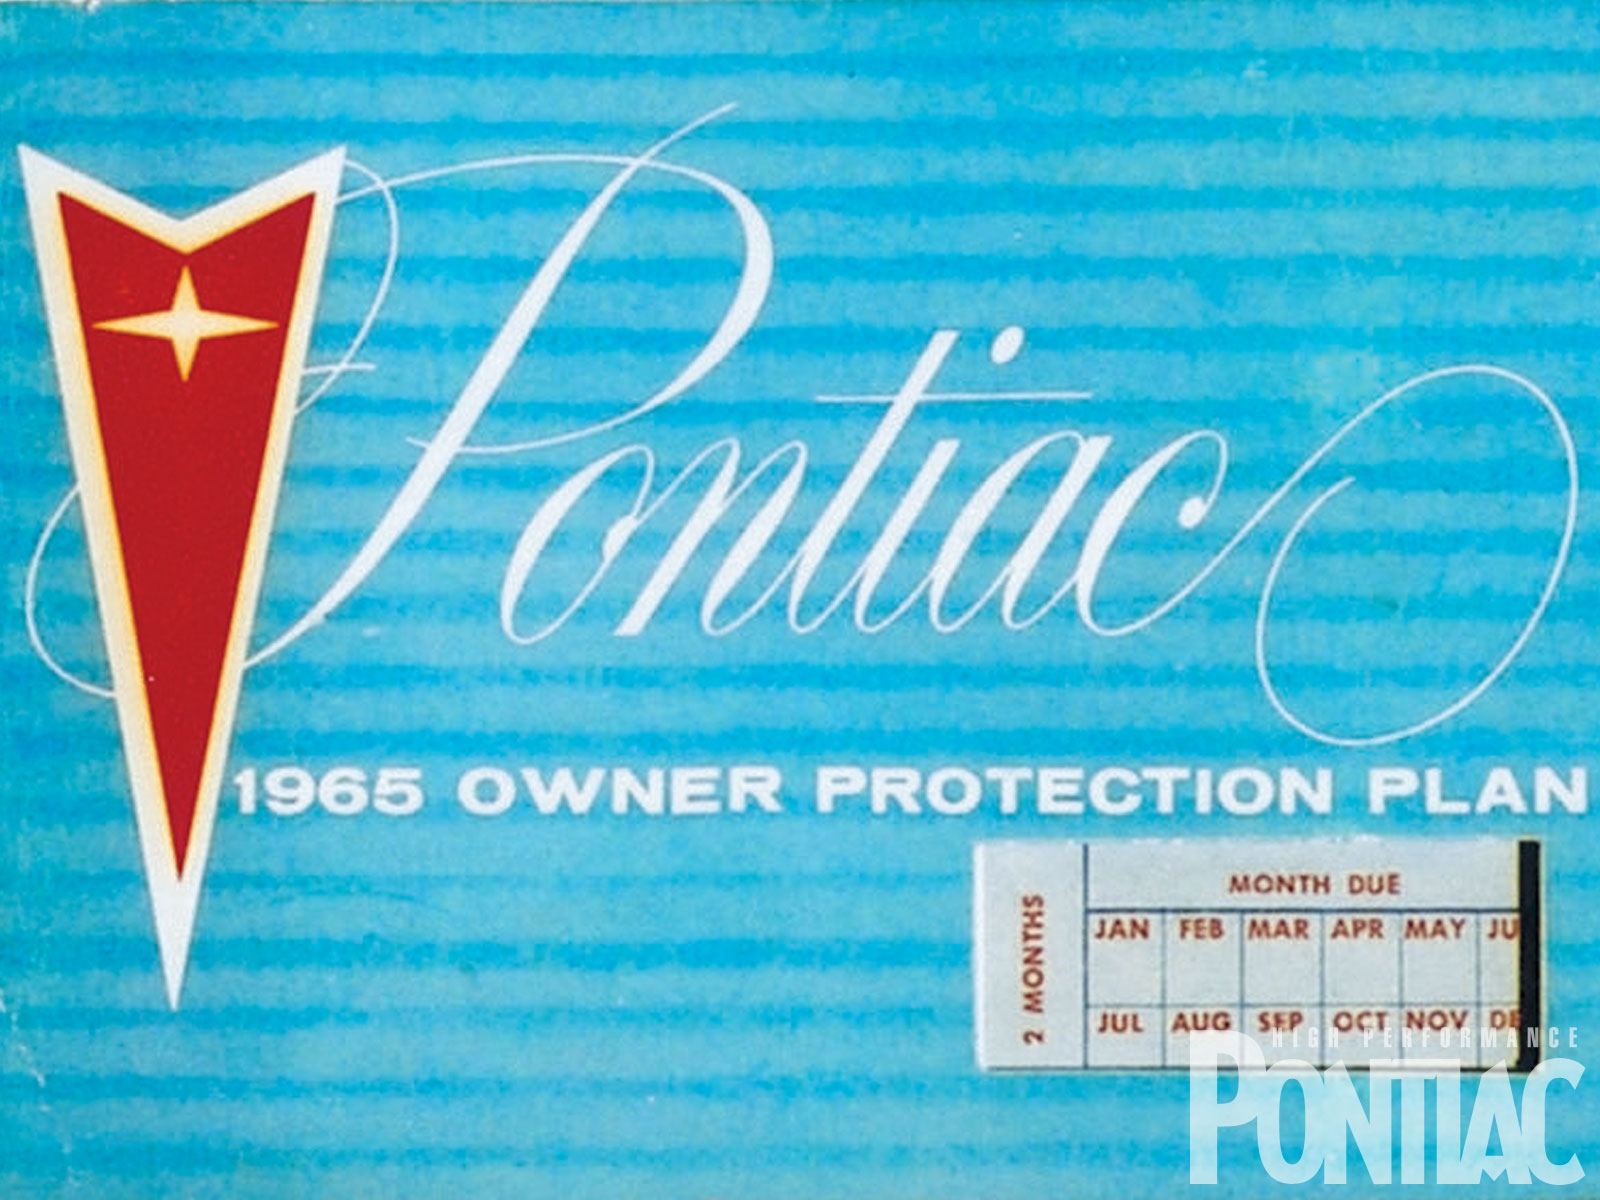 From '63-'67, the Ident-O-Plate or Protect-O-Plate could be found affixed to the inside back cover of their Owner Protection Plans. This example is from '65.